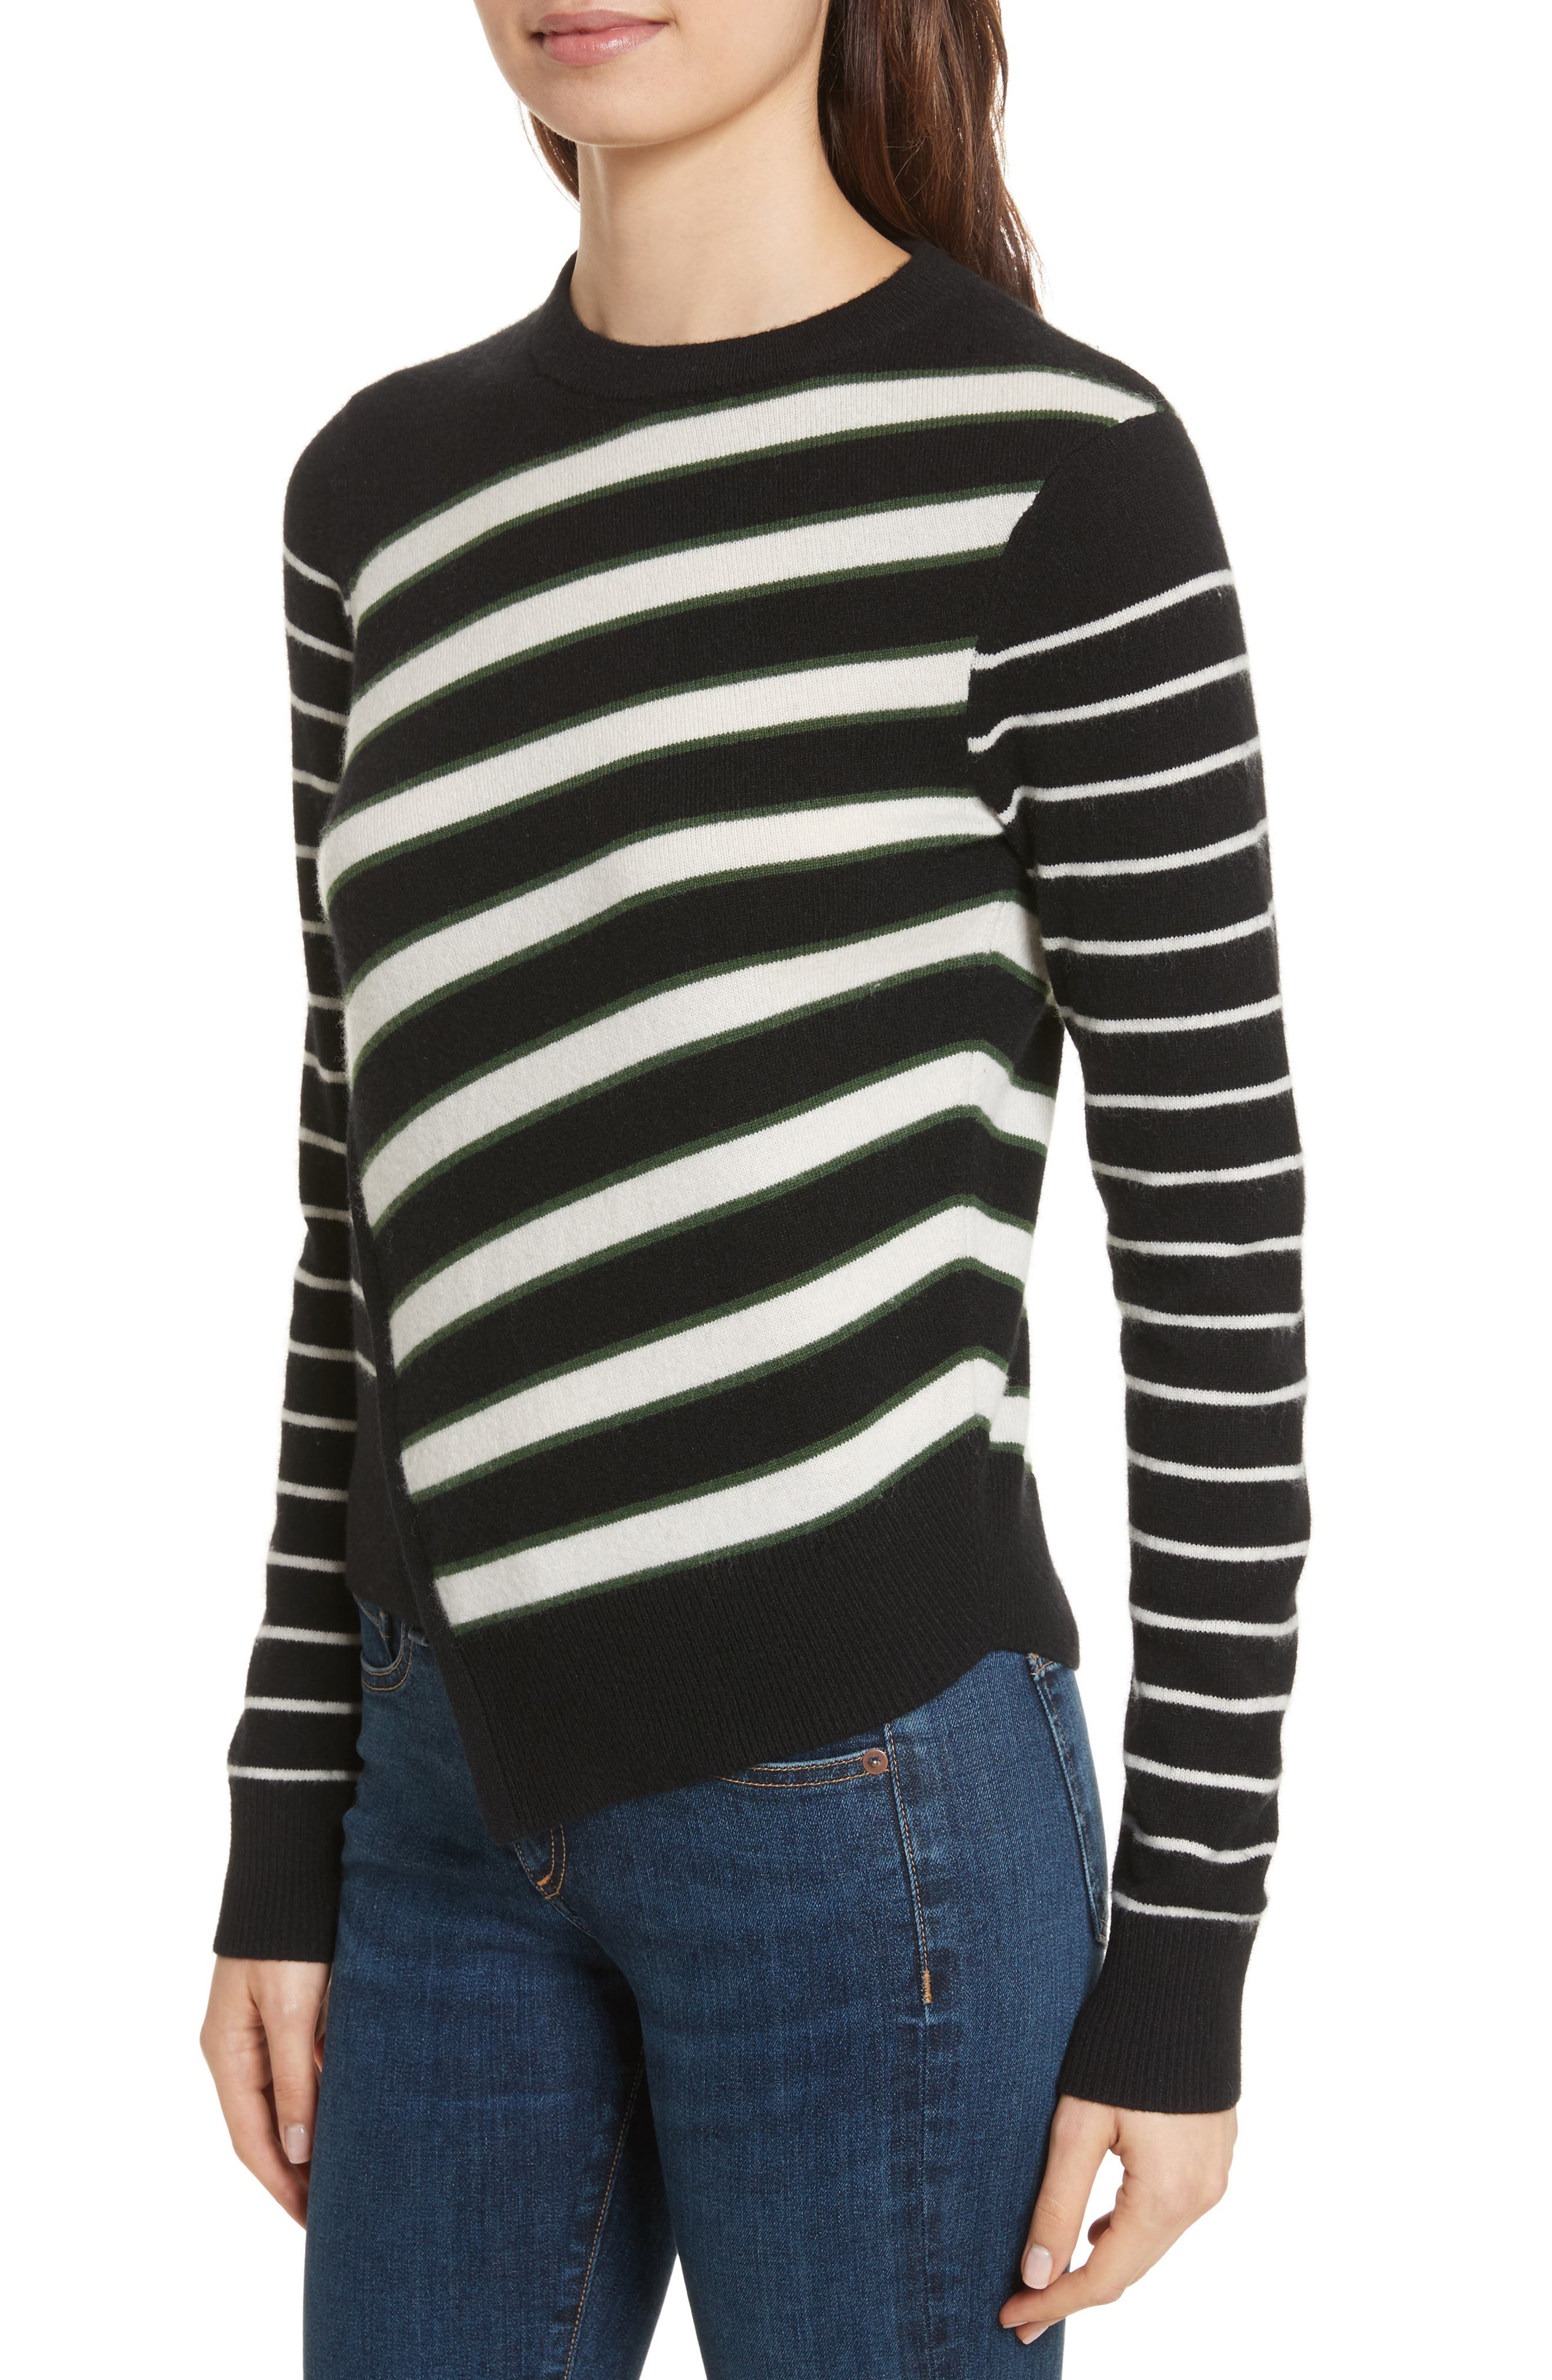 Pepper Cashmere Sweater,                             Alternate thumbnail 4, color,                             007